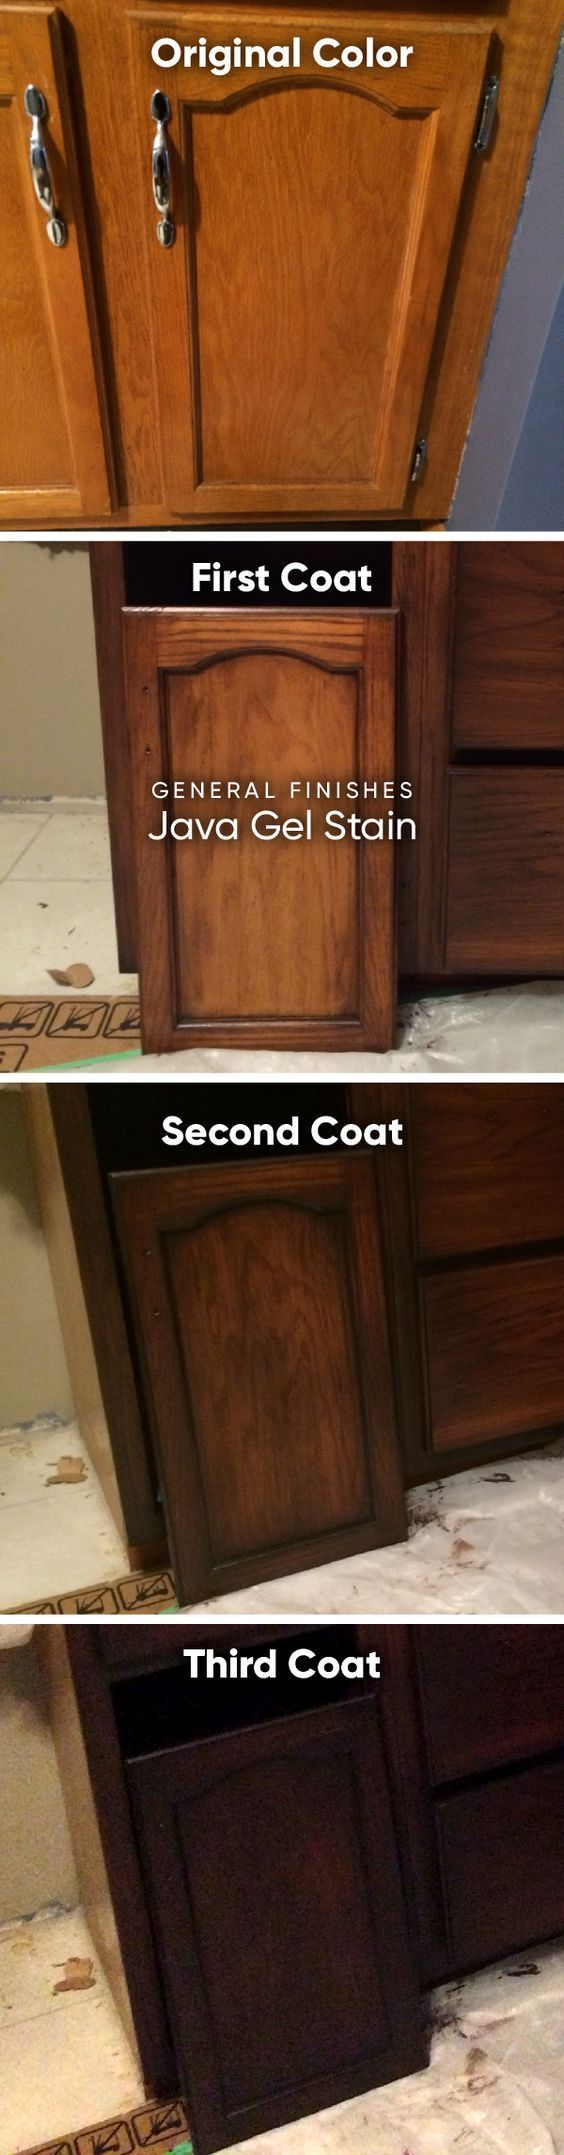 Java light rail molding cabinets com - How To Beef Up The Molding On Your Kitchen Cabinets White Kitchen Cabinets Inspiration Pinterest Molding Ideas Builder Grade And Moldings